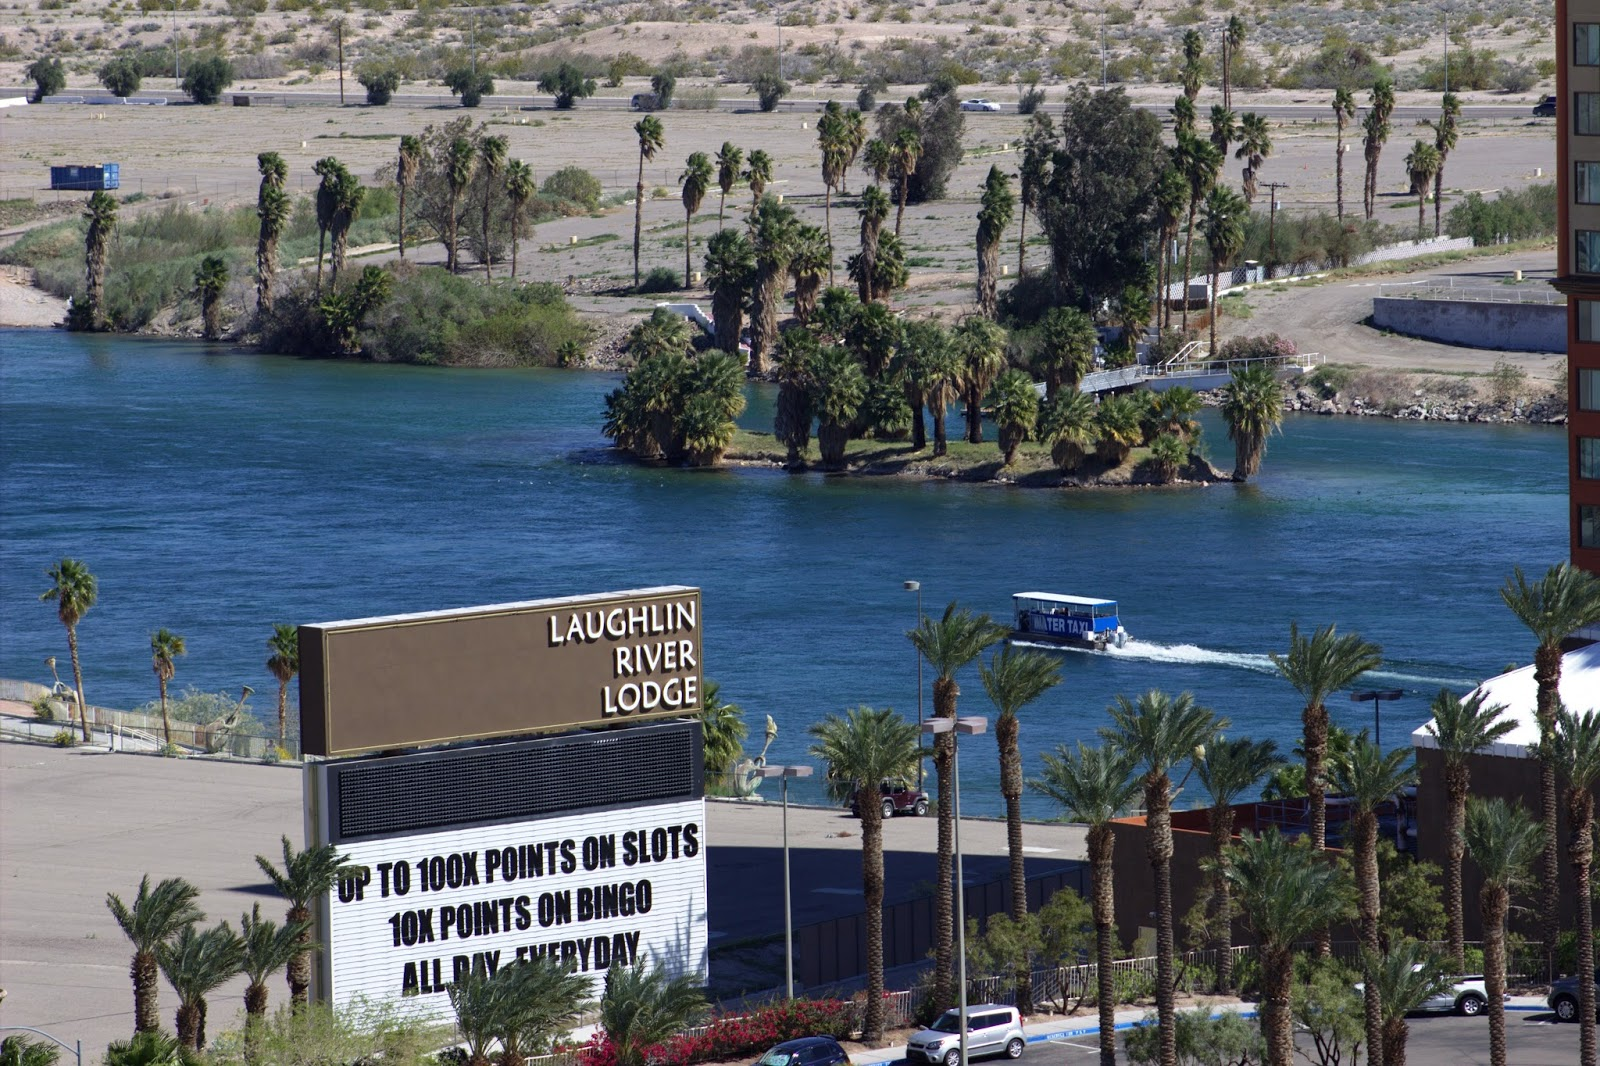 Laughlin Nevada  Wikipedia